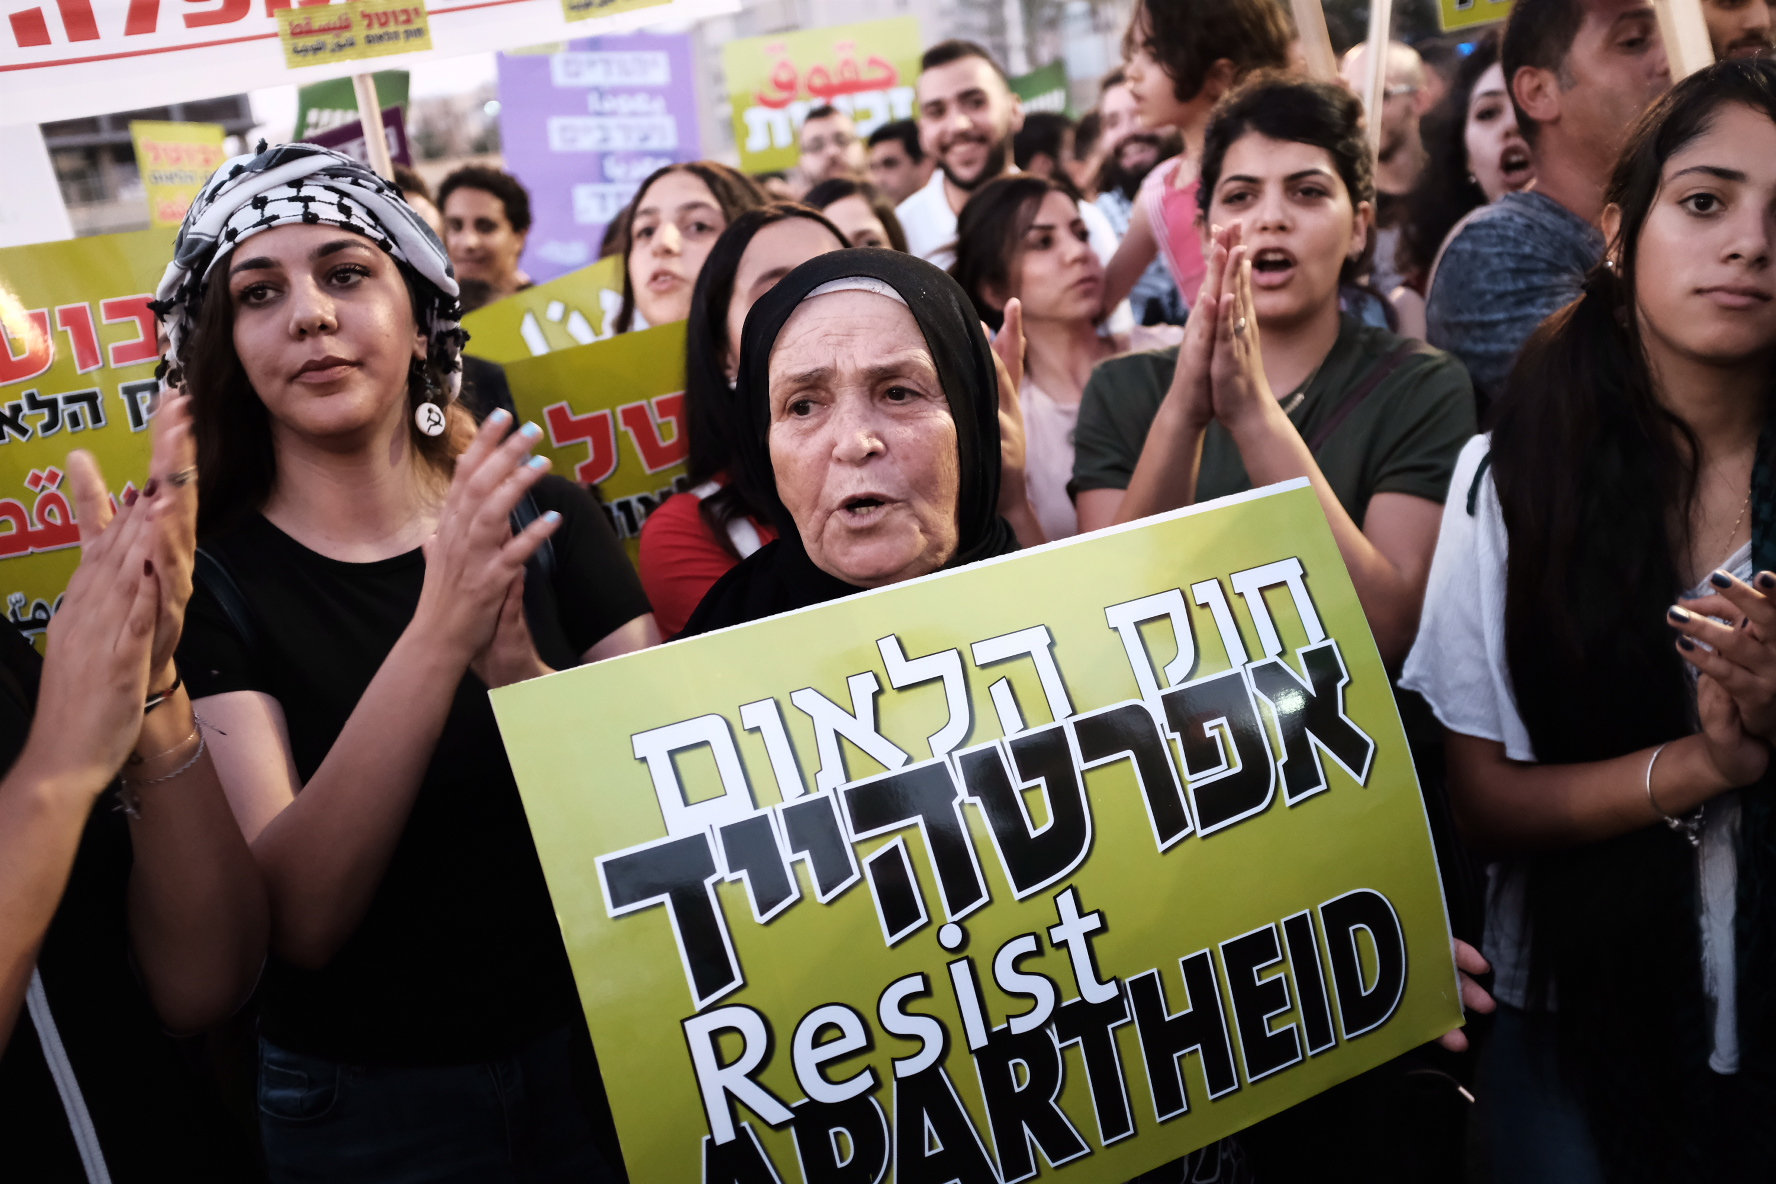 Palestinian citizens of Israel and activists protest against the Jewish Nation-State Law in Rabin Square, Tel Aviv, Aug. 11, 2018. (Tomer Neuberg/Flash90)